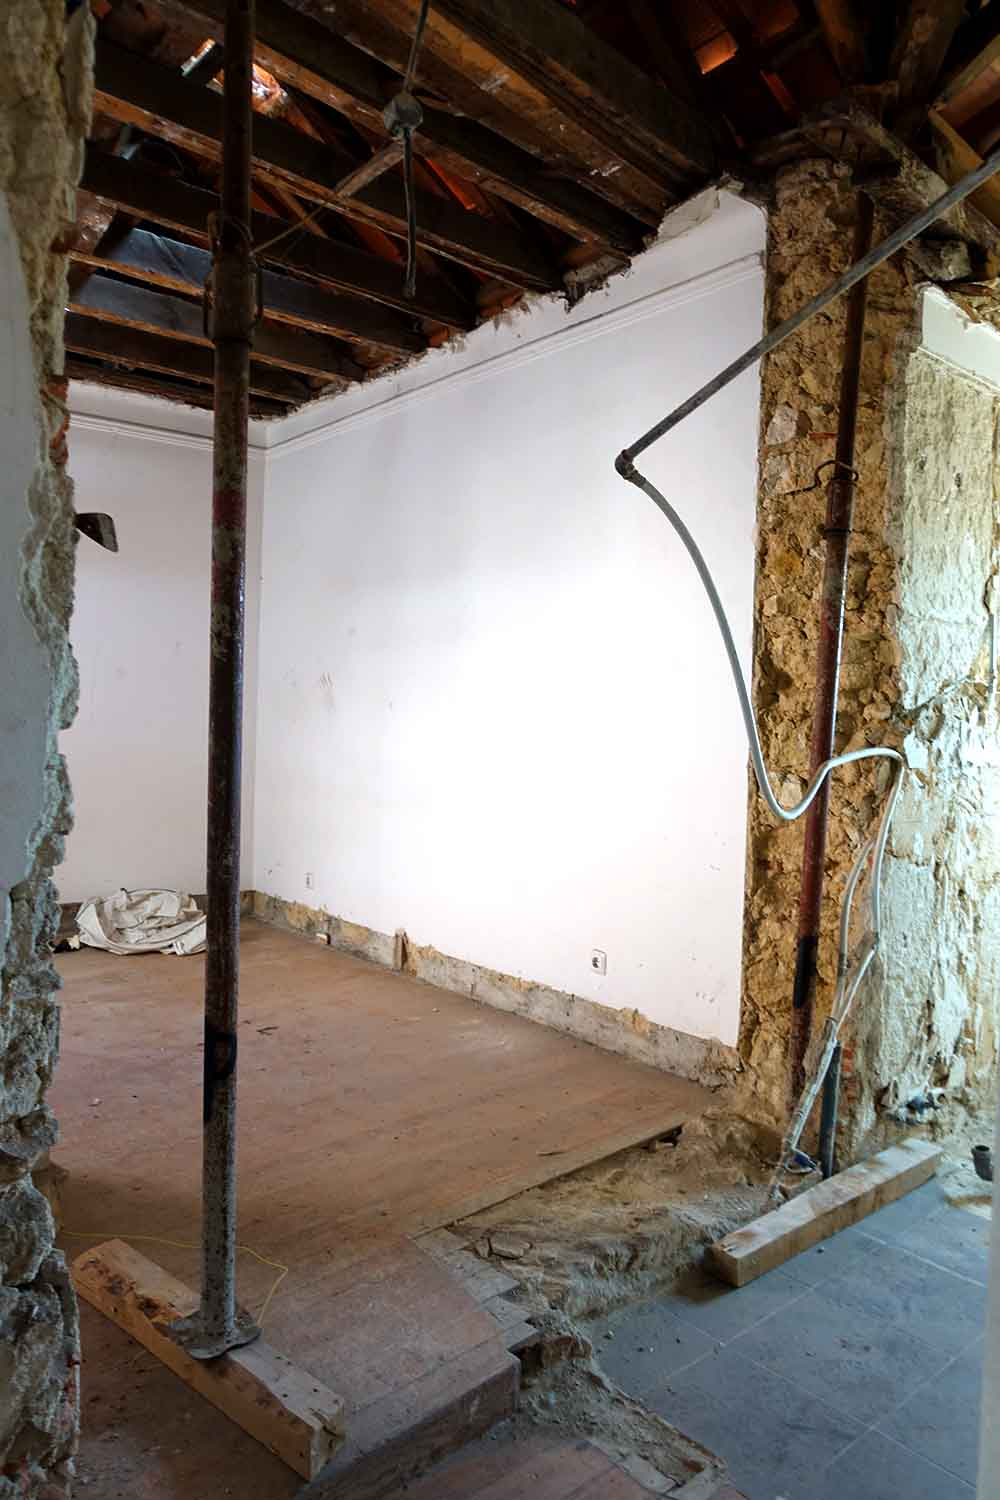 The current plans specify a roof terrace to be built above this room, which would give the apartment some very desirable outdoor space.